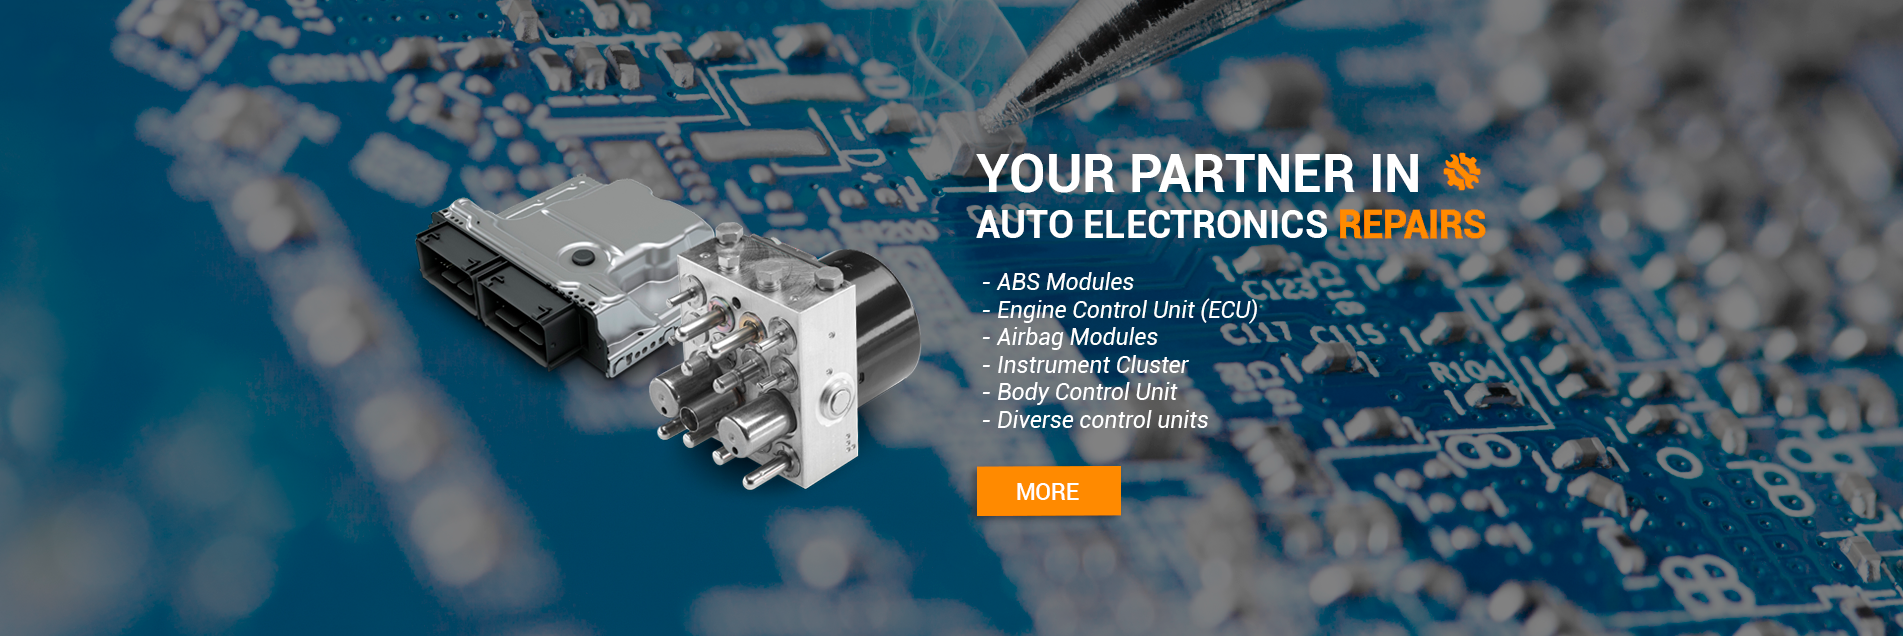 Your partner in auto electronic repairs